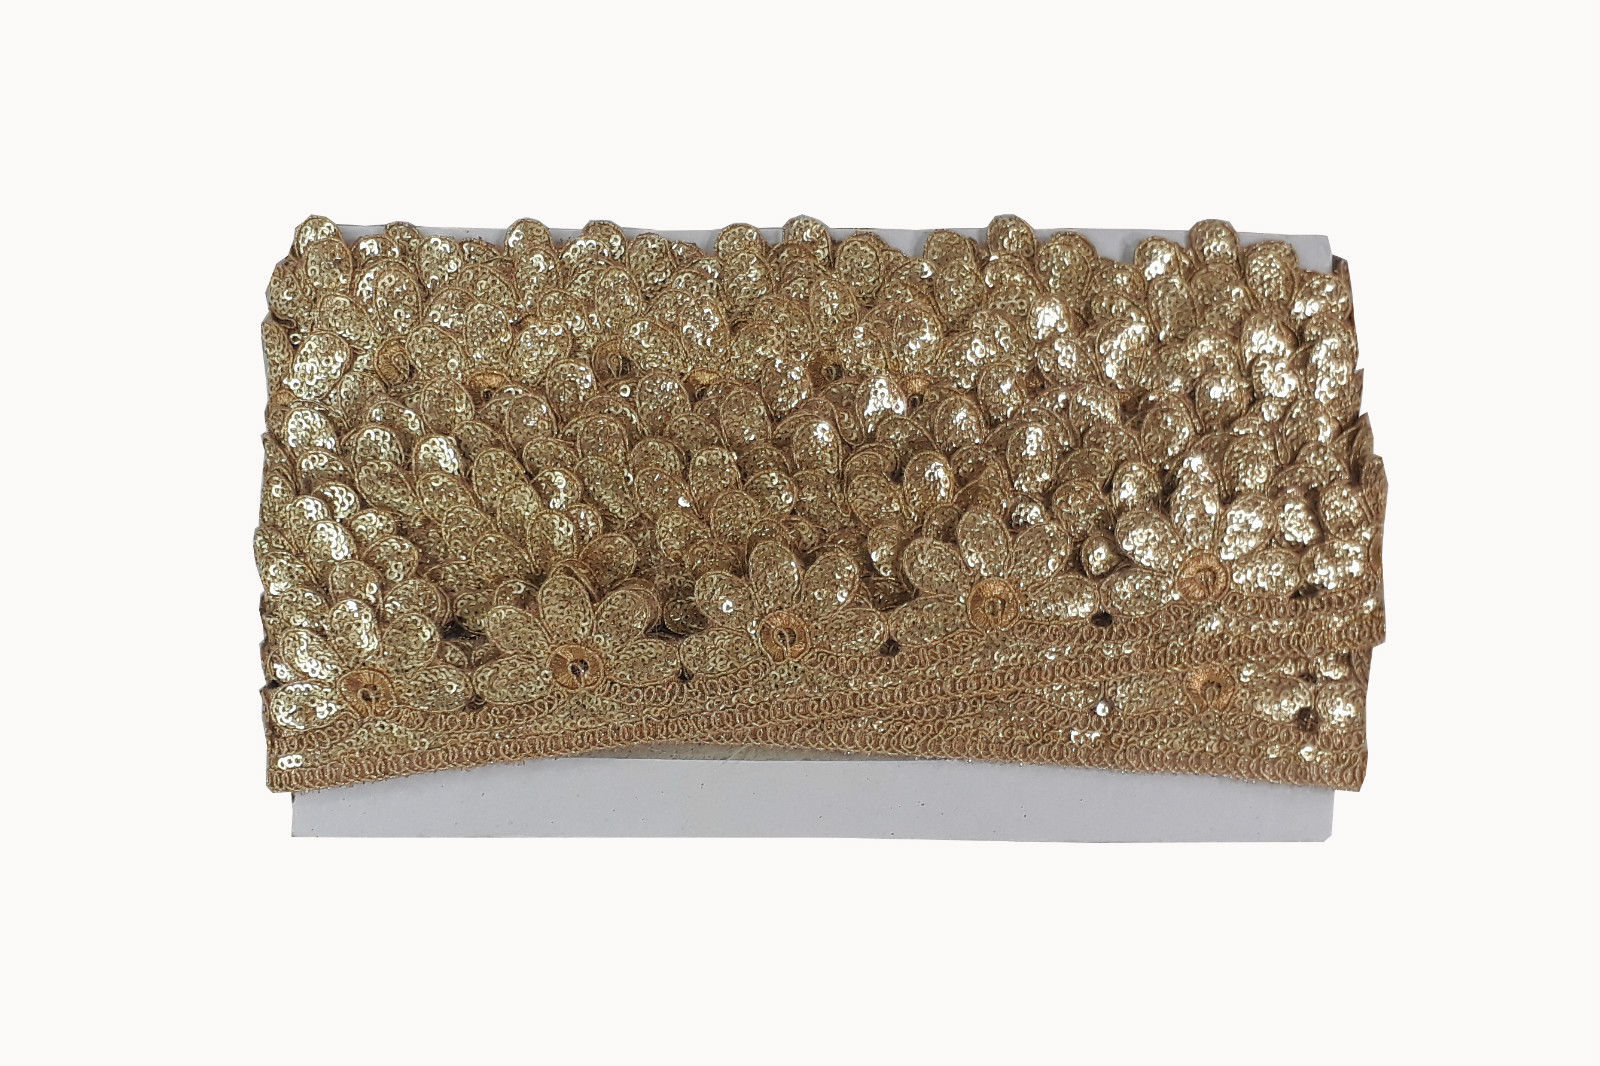 fabric trim wholesale decorative lace trim Gold Gold Embroidery n Sequins Polyester Less than 2 inch